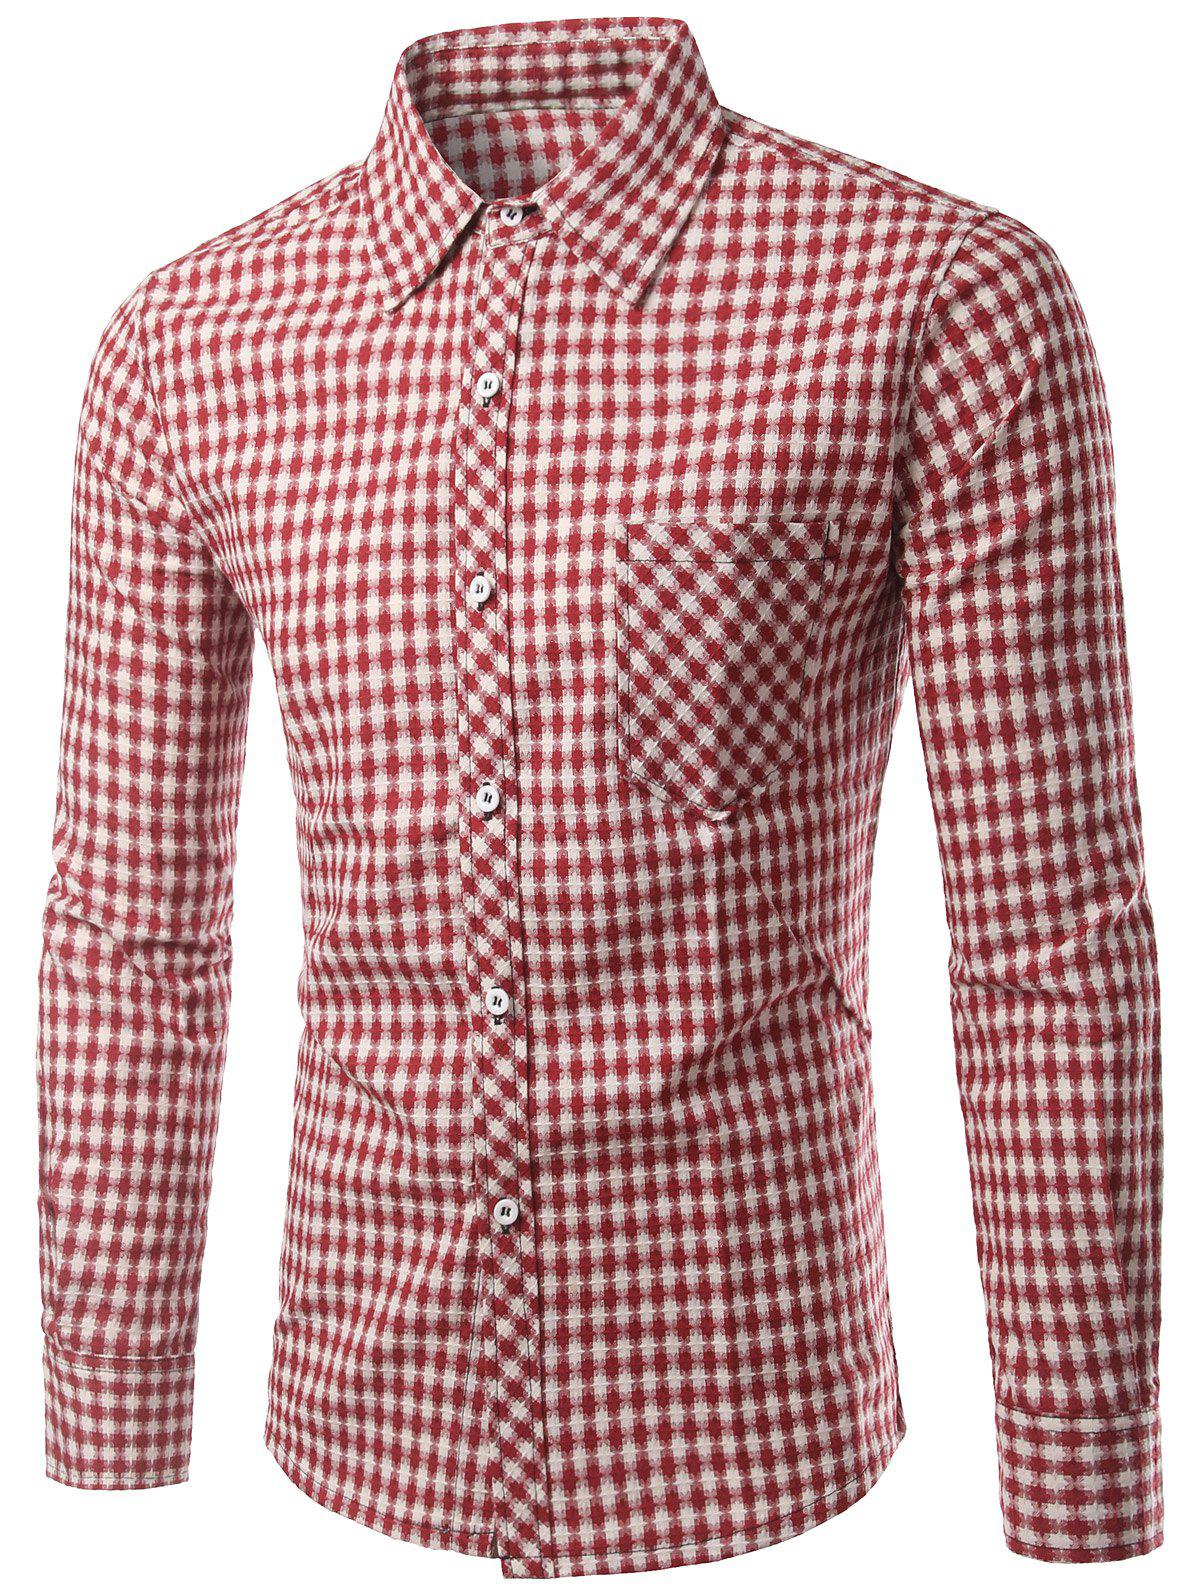 Small Grid Long Sleeve Slimming Men's Shirt - RED 3XL